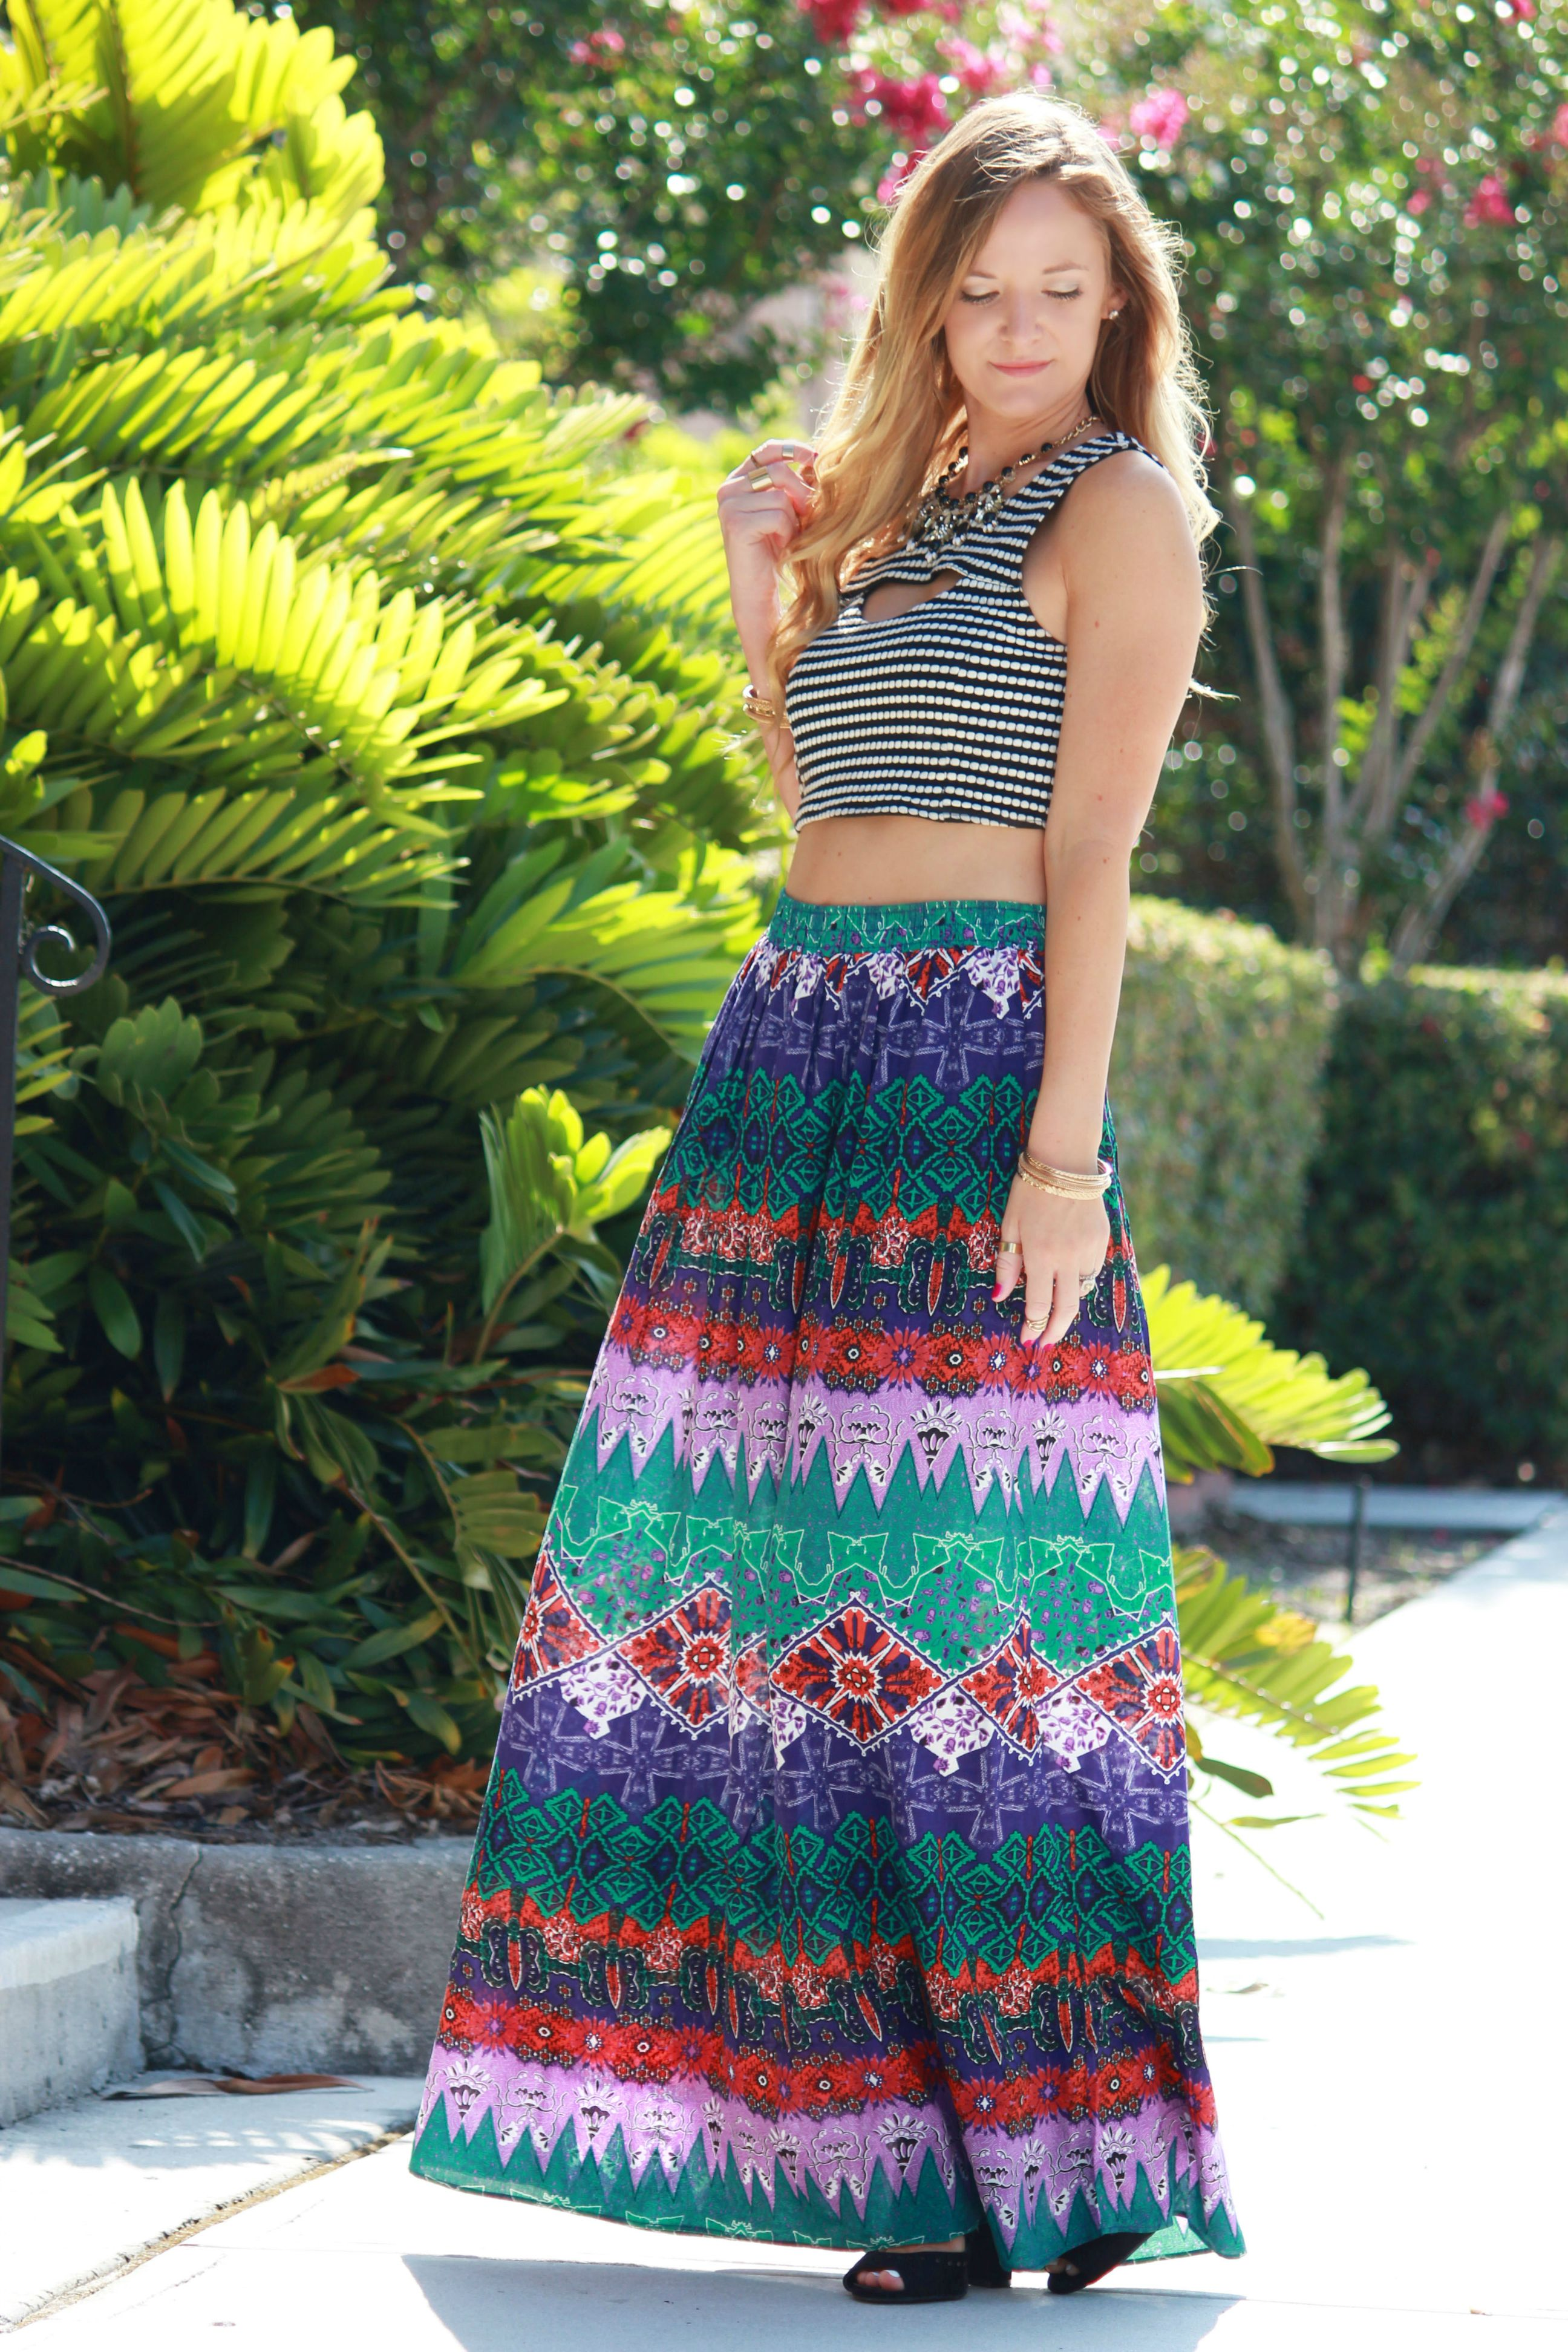 forever 21 skirt, tribal maxi skirt, boho outfit, crop top, crop top and skirt outfit, summer outfit, going out outfit, charlotte russe heels,